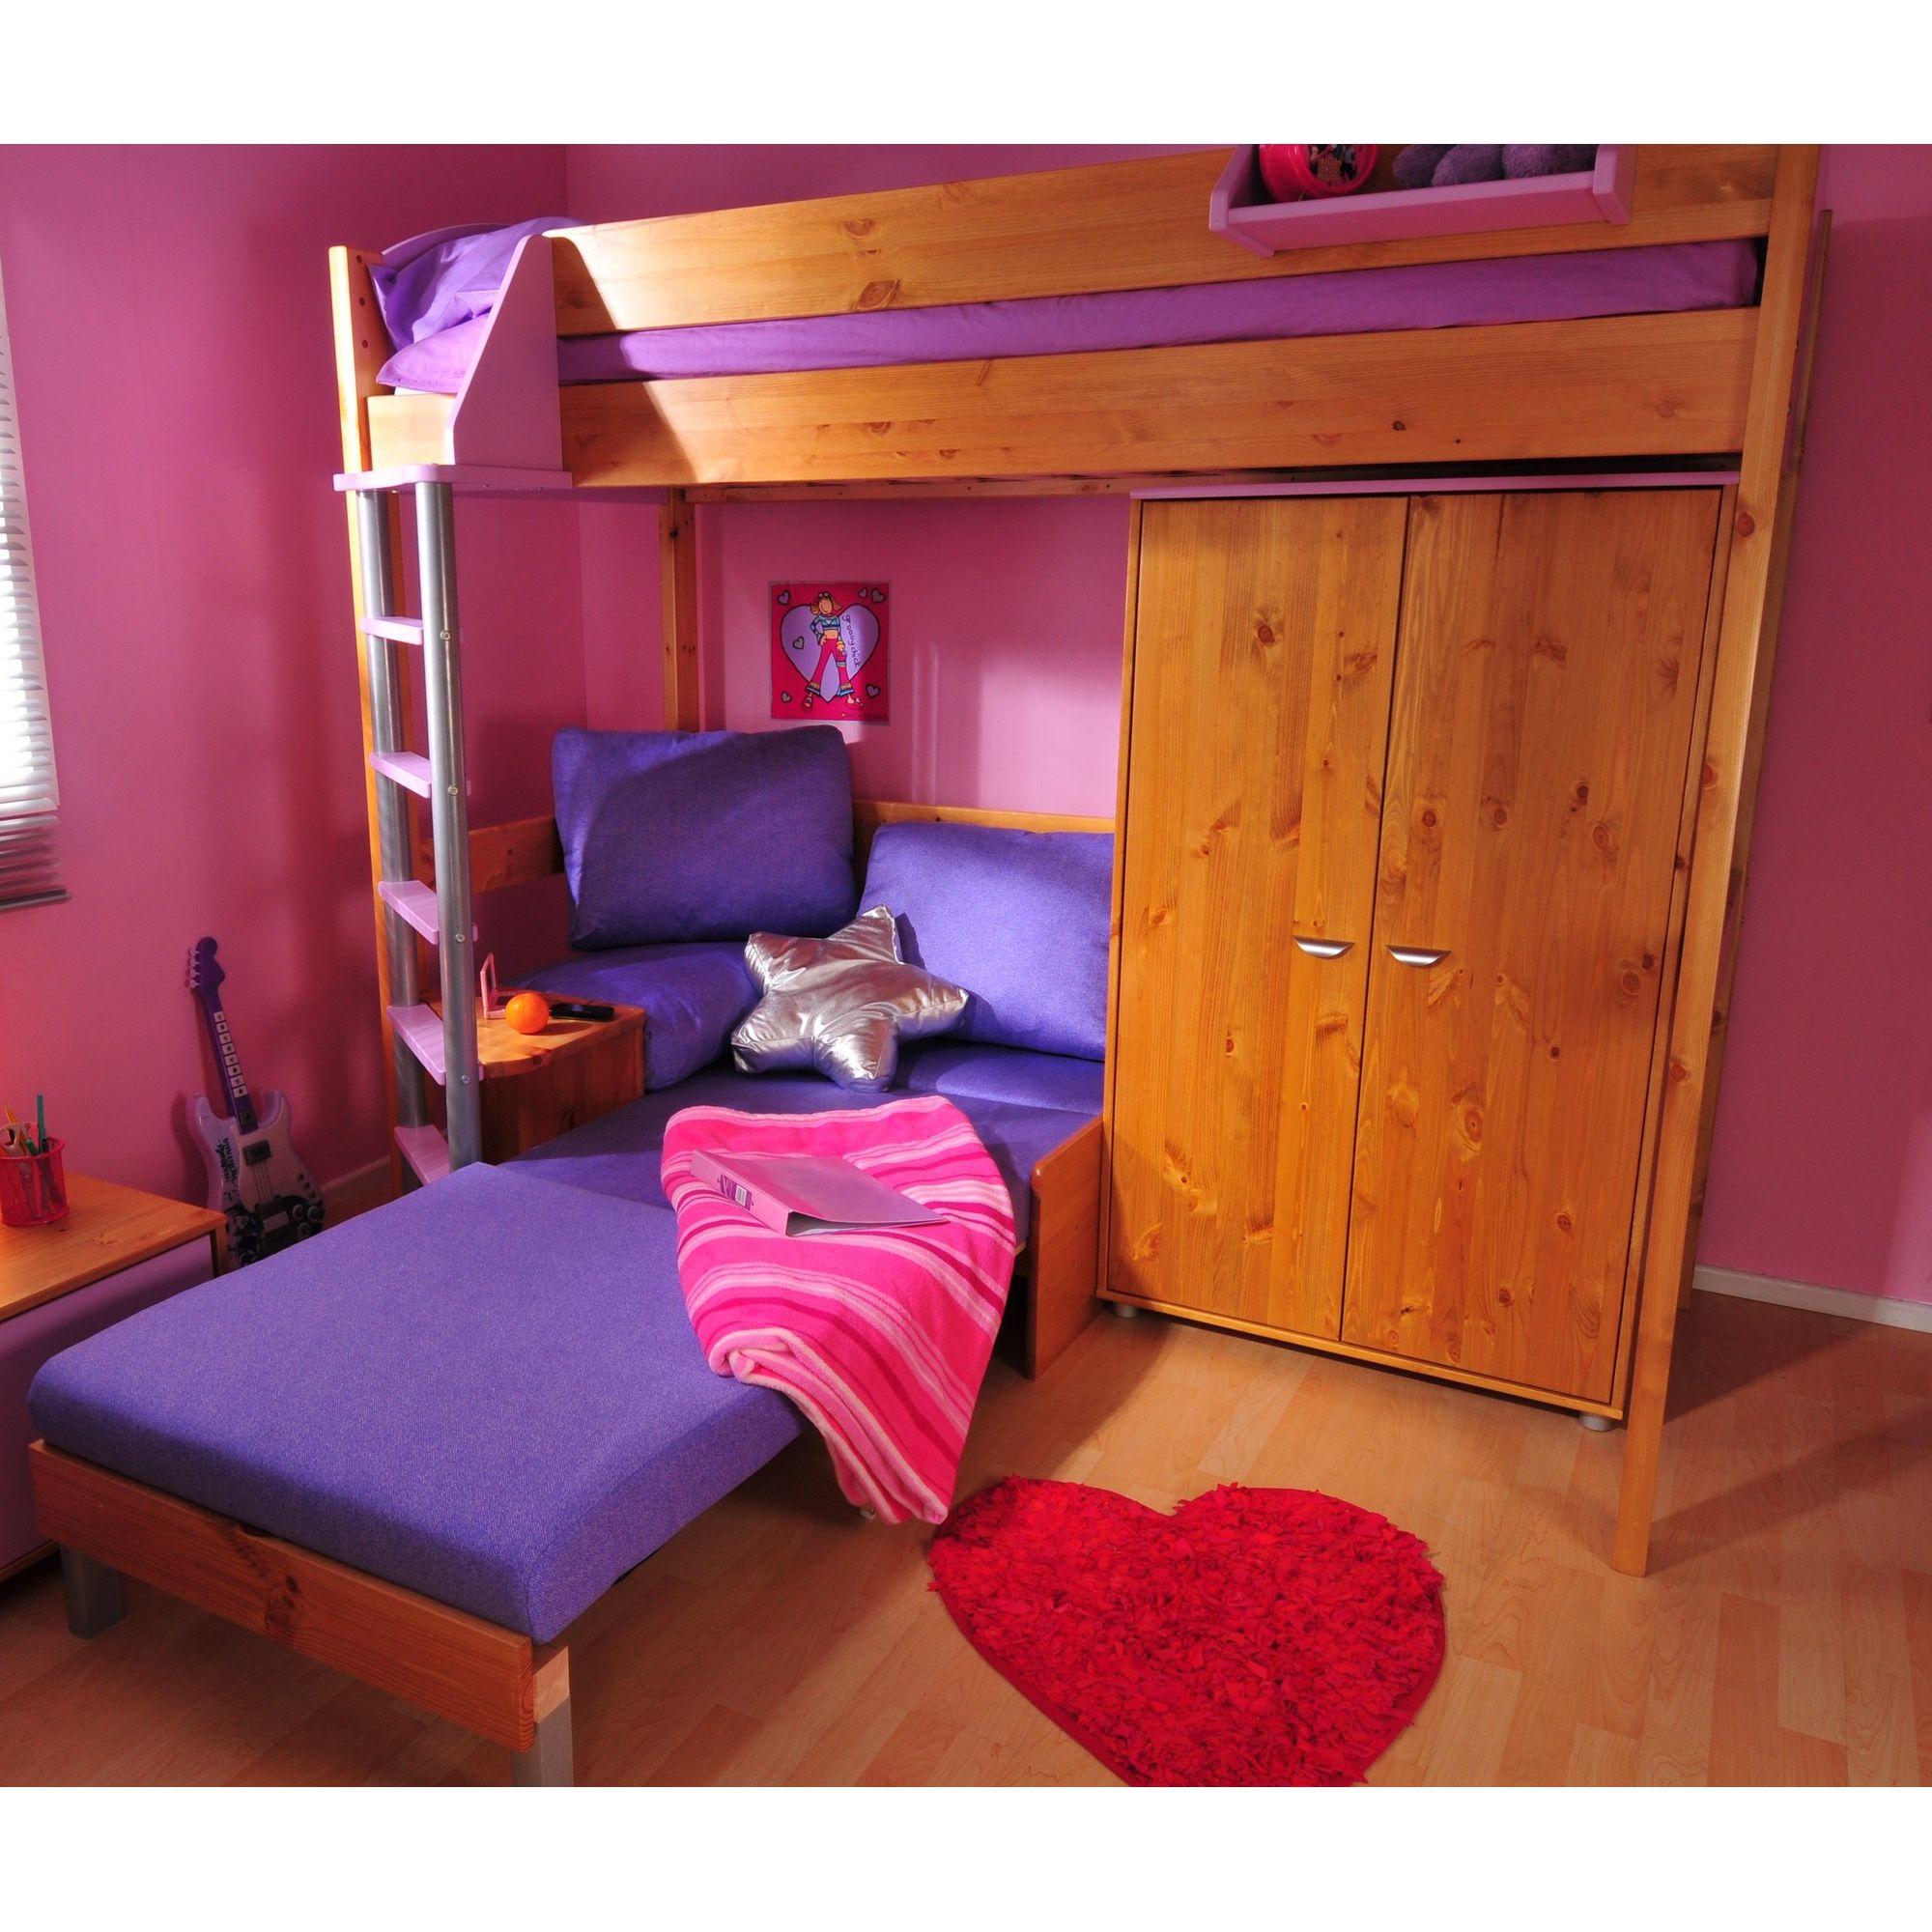 Stompa Casa High Sleeper with Sofa Bed and Wardrobe - Antique - Lilac - Black at Tesco Direct